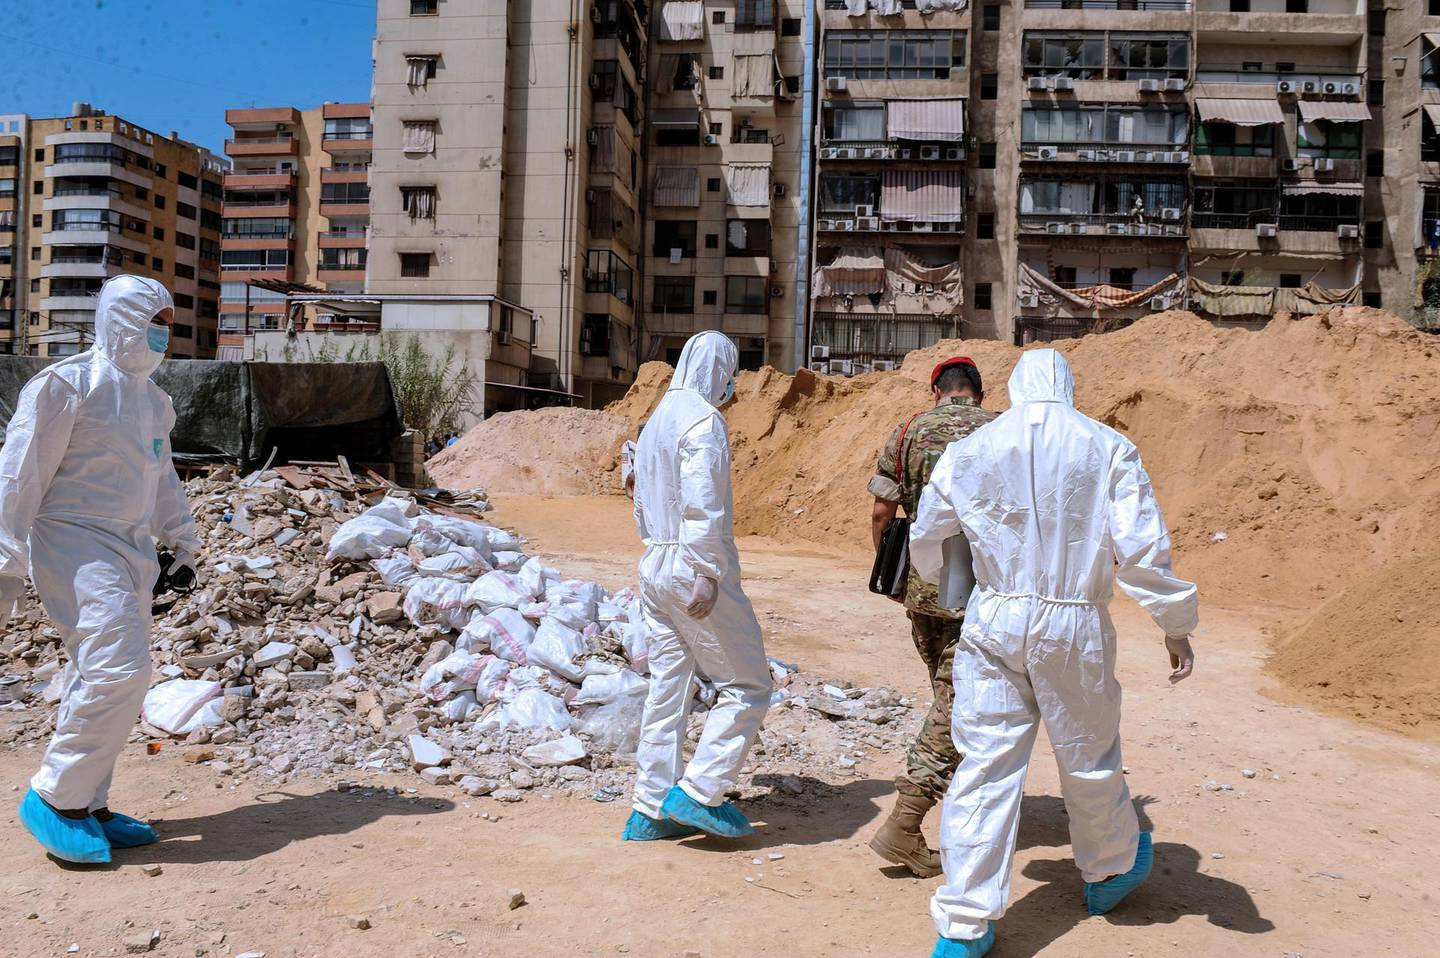 epa07792264 Investigators of Lebanon's military intelligence inspect the site after an alleged attack carried by two Israeli drones, in the southern suburb of Beirut, Lebanon, 25 August 2019. According to the Lebanese Armed Forces (LAF), two Israeli drones violated the Lebanese airspace over the southern suburbs of Beirut, adding that one fell down while the second exploded causing material damage. Hezbollah media office said that the drone caused damage to its media center, hours after Israel launched air strikes in Damascus, Syria.  EPA/NABIL MOUNZER